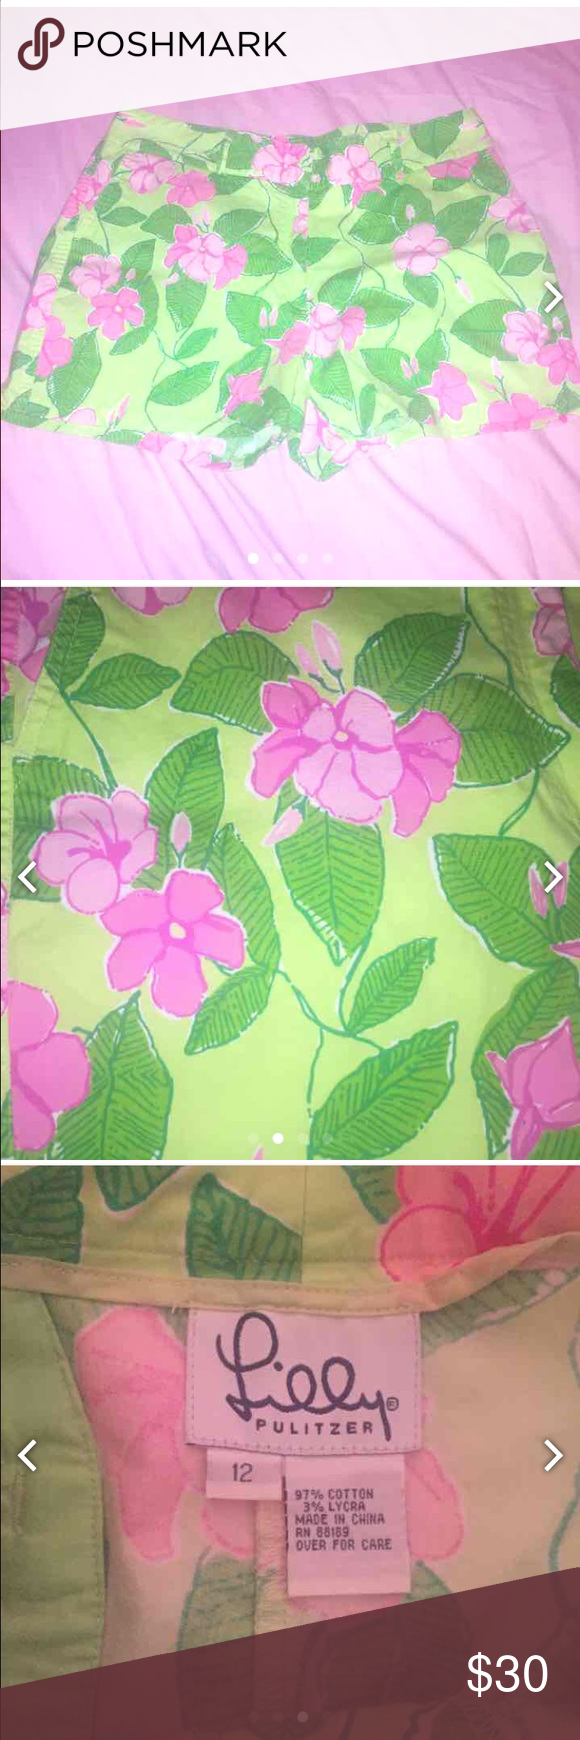 Lilly Pulitzer floral print shorts Lilly Pulitzer pink and green floral print shorts. In good condition. Size 12. White label lilly. Lilly Pulitzer Shorts